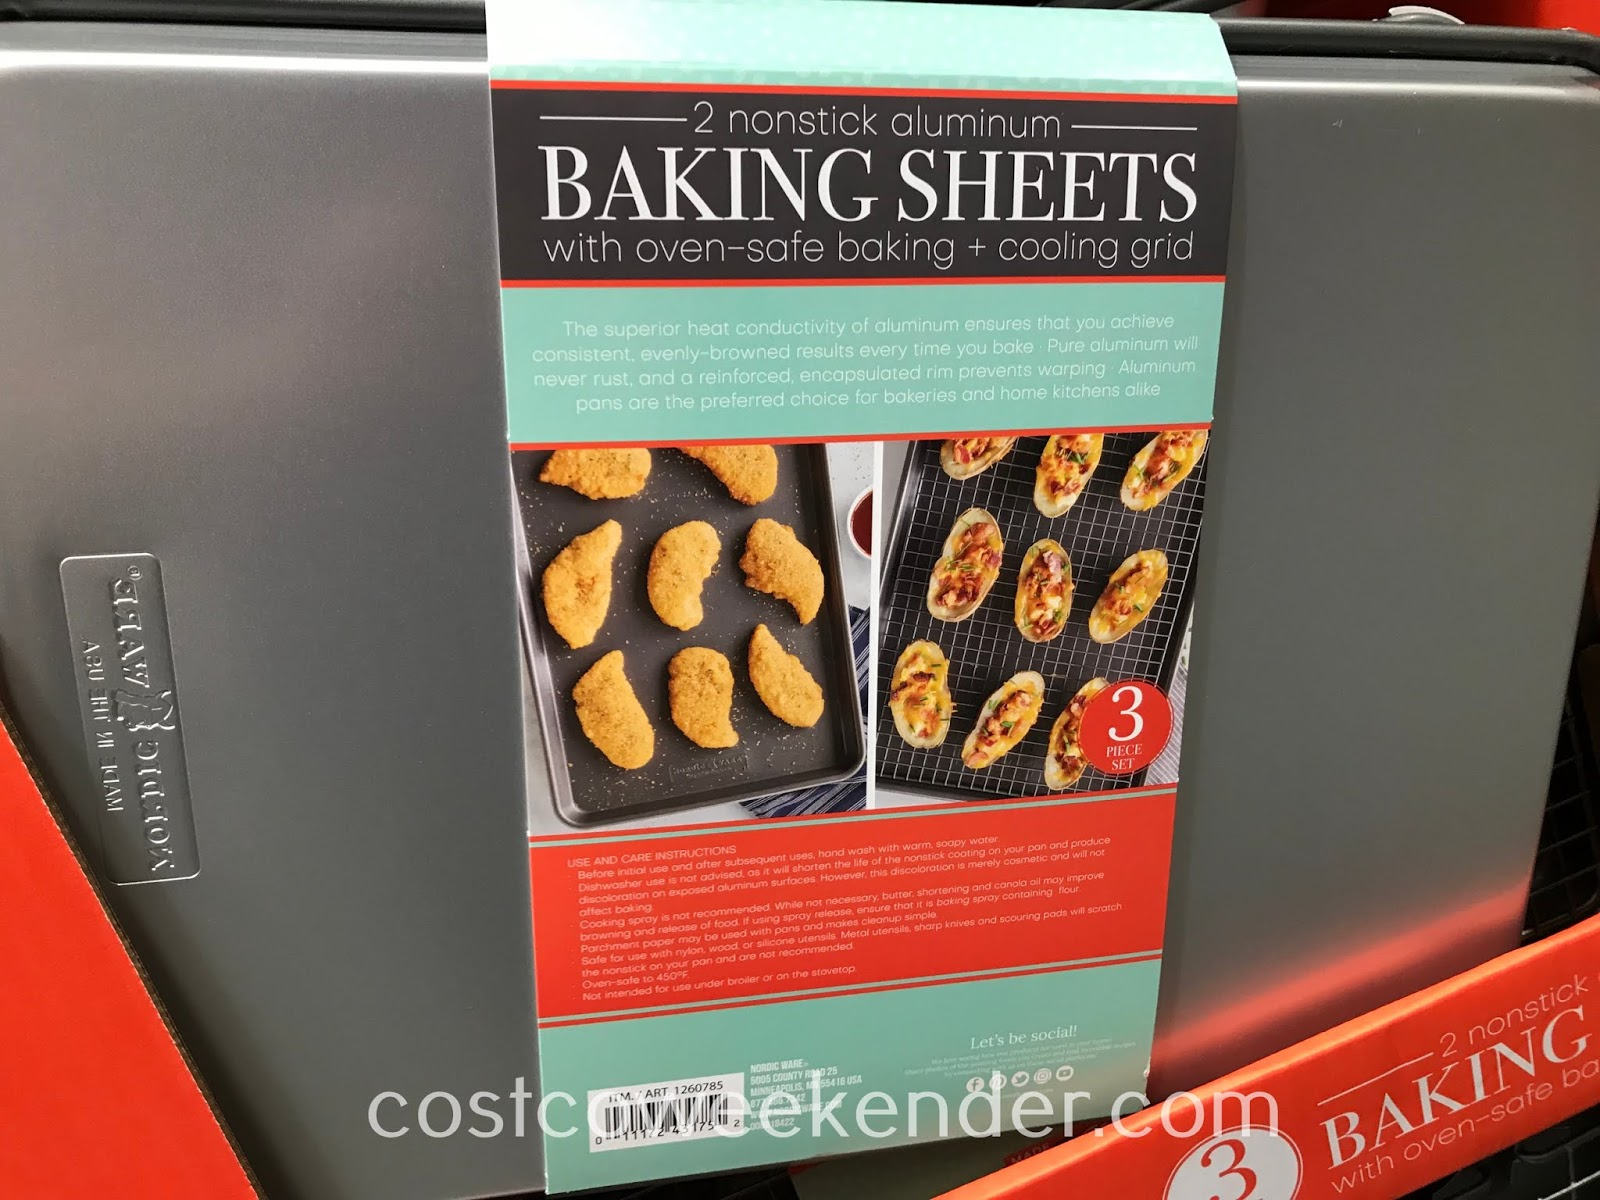 Costco 1260785 - Nordic Ware Nonstick Aluminum Baking Sheets: great for any home baker